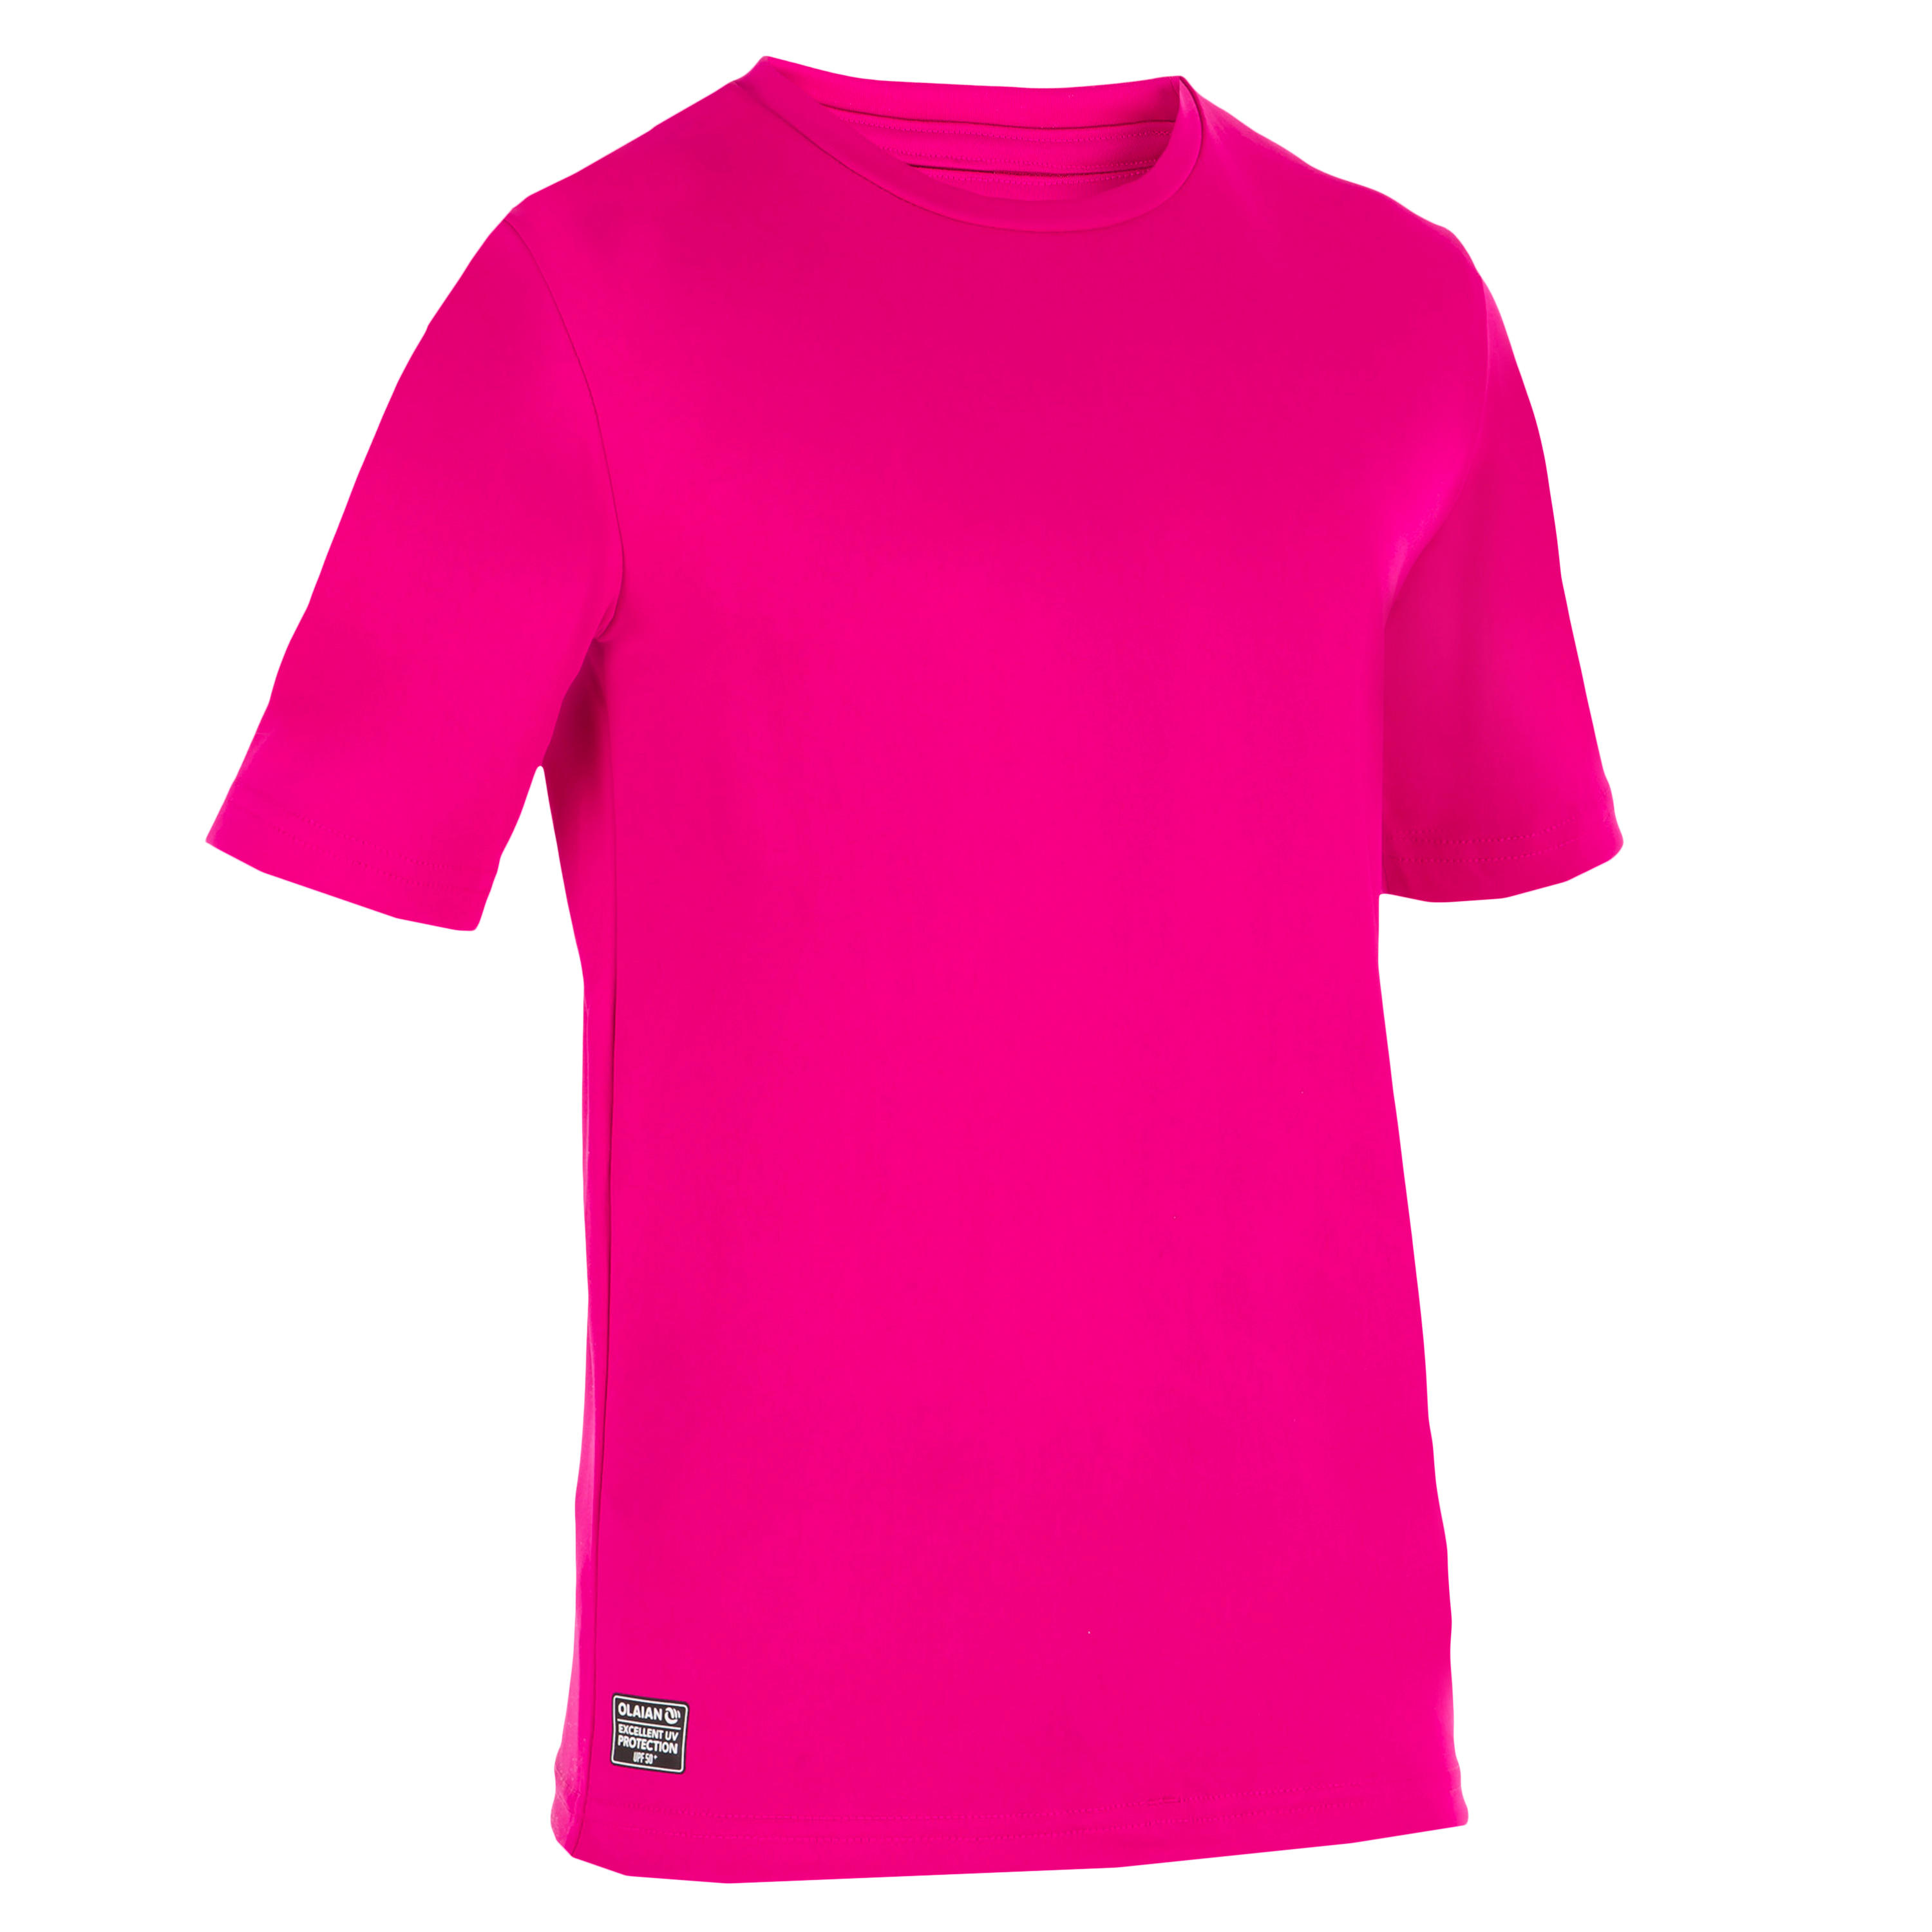 Children's Short Sleeve UV Protection Surfing Water T-Shirt - Pink